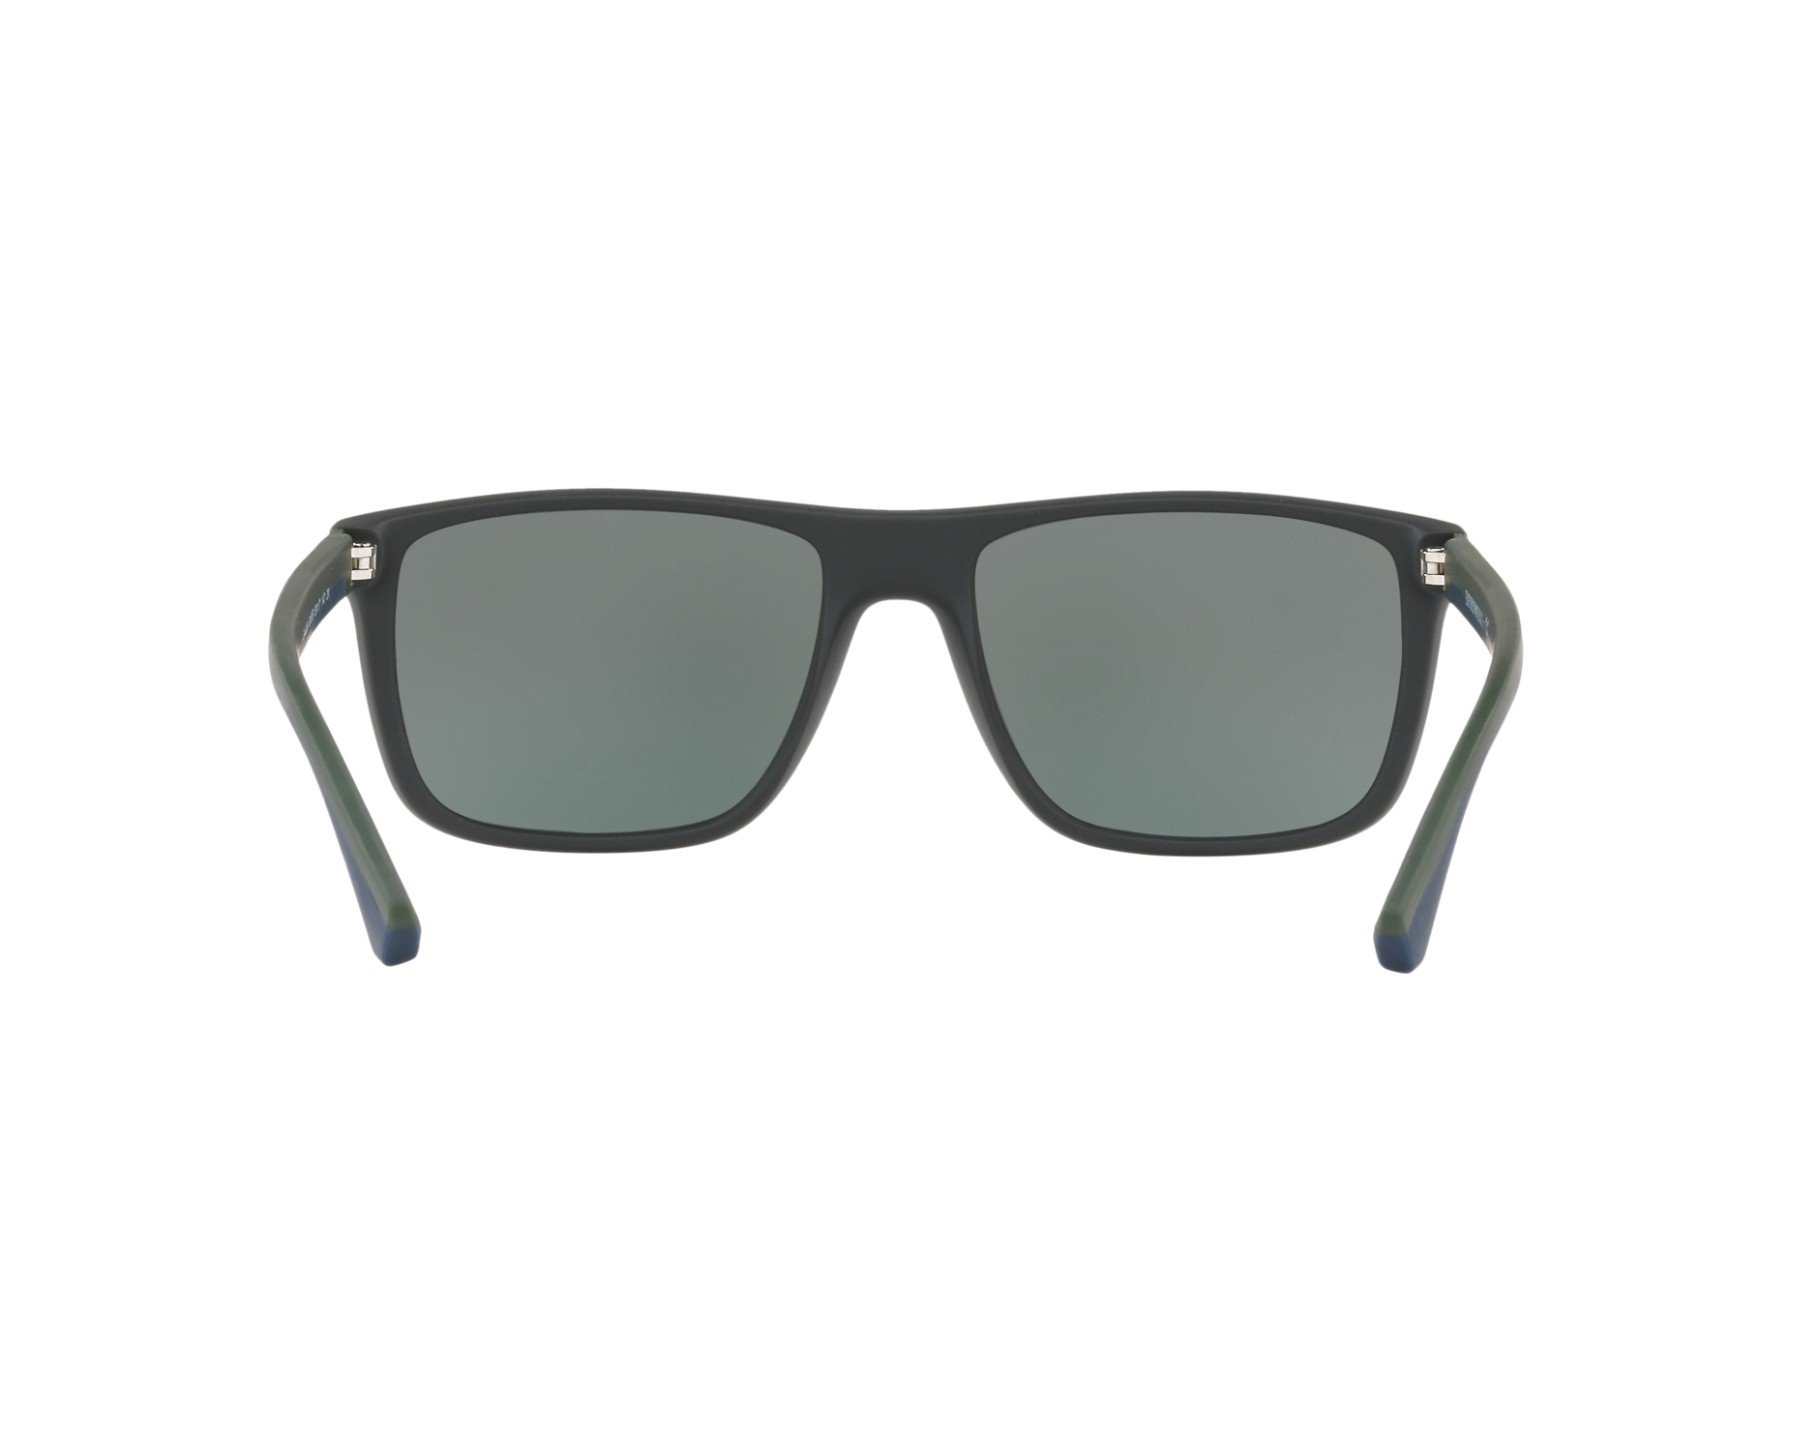 2a537b96af26b Sunglasses Emporio Armani EA-4033 56156R 56-17 Blue Green 360 degree view 7